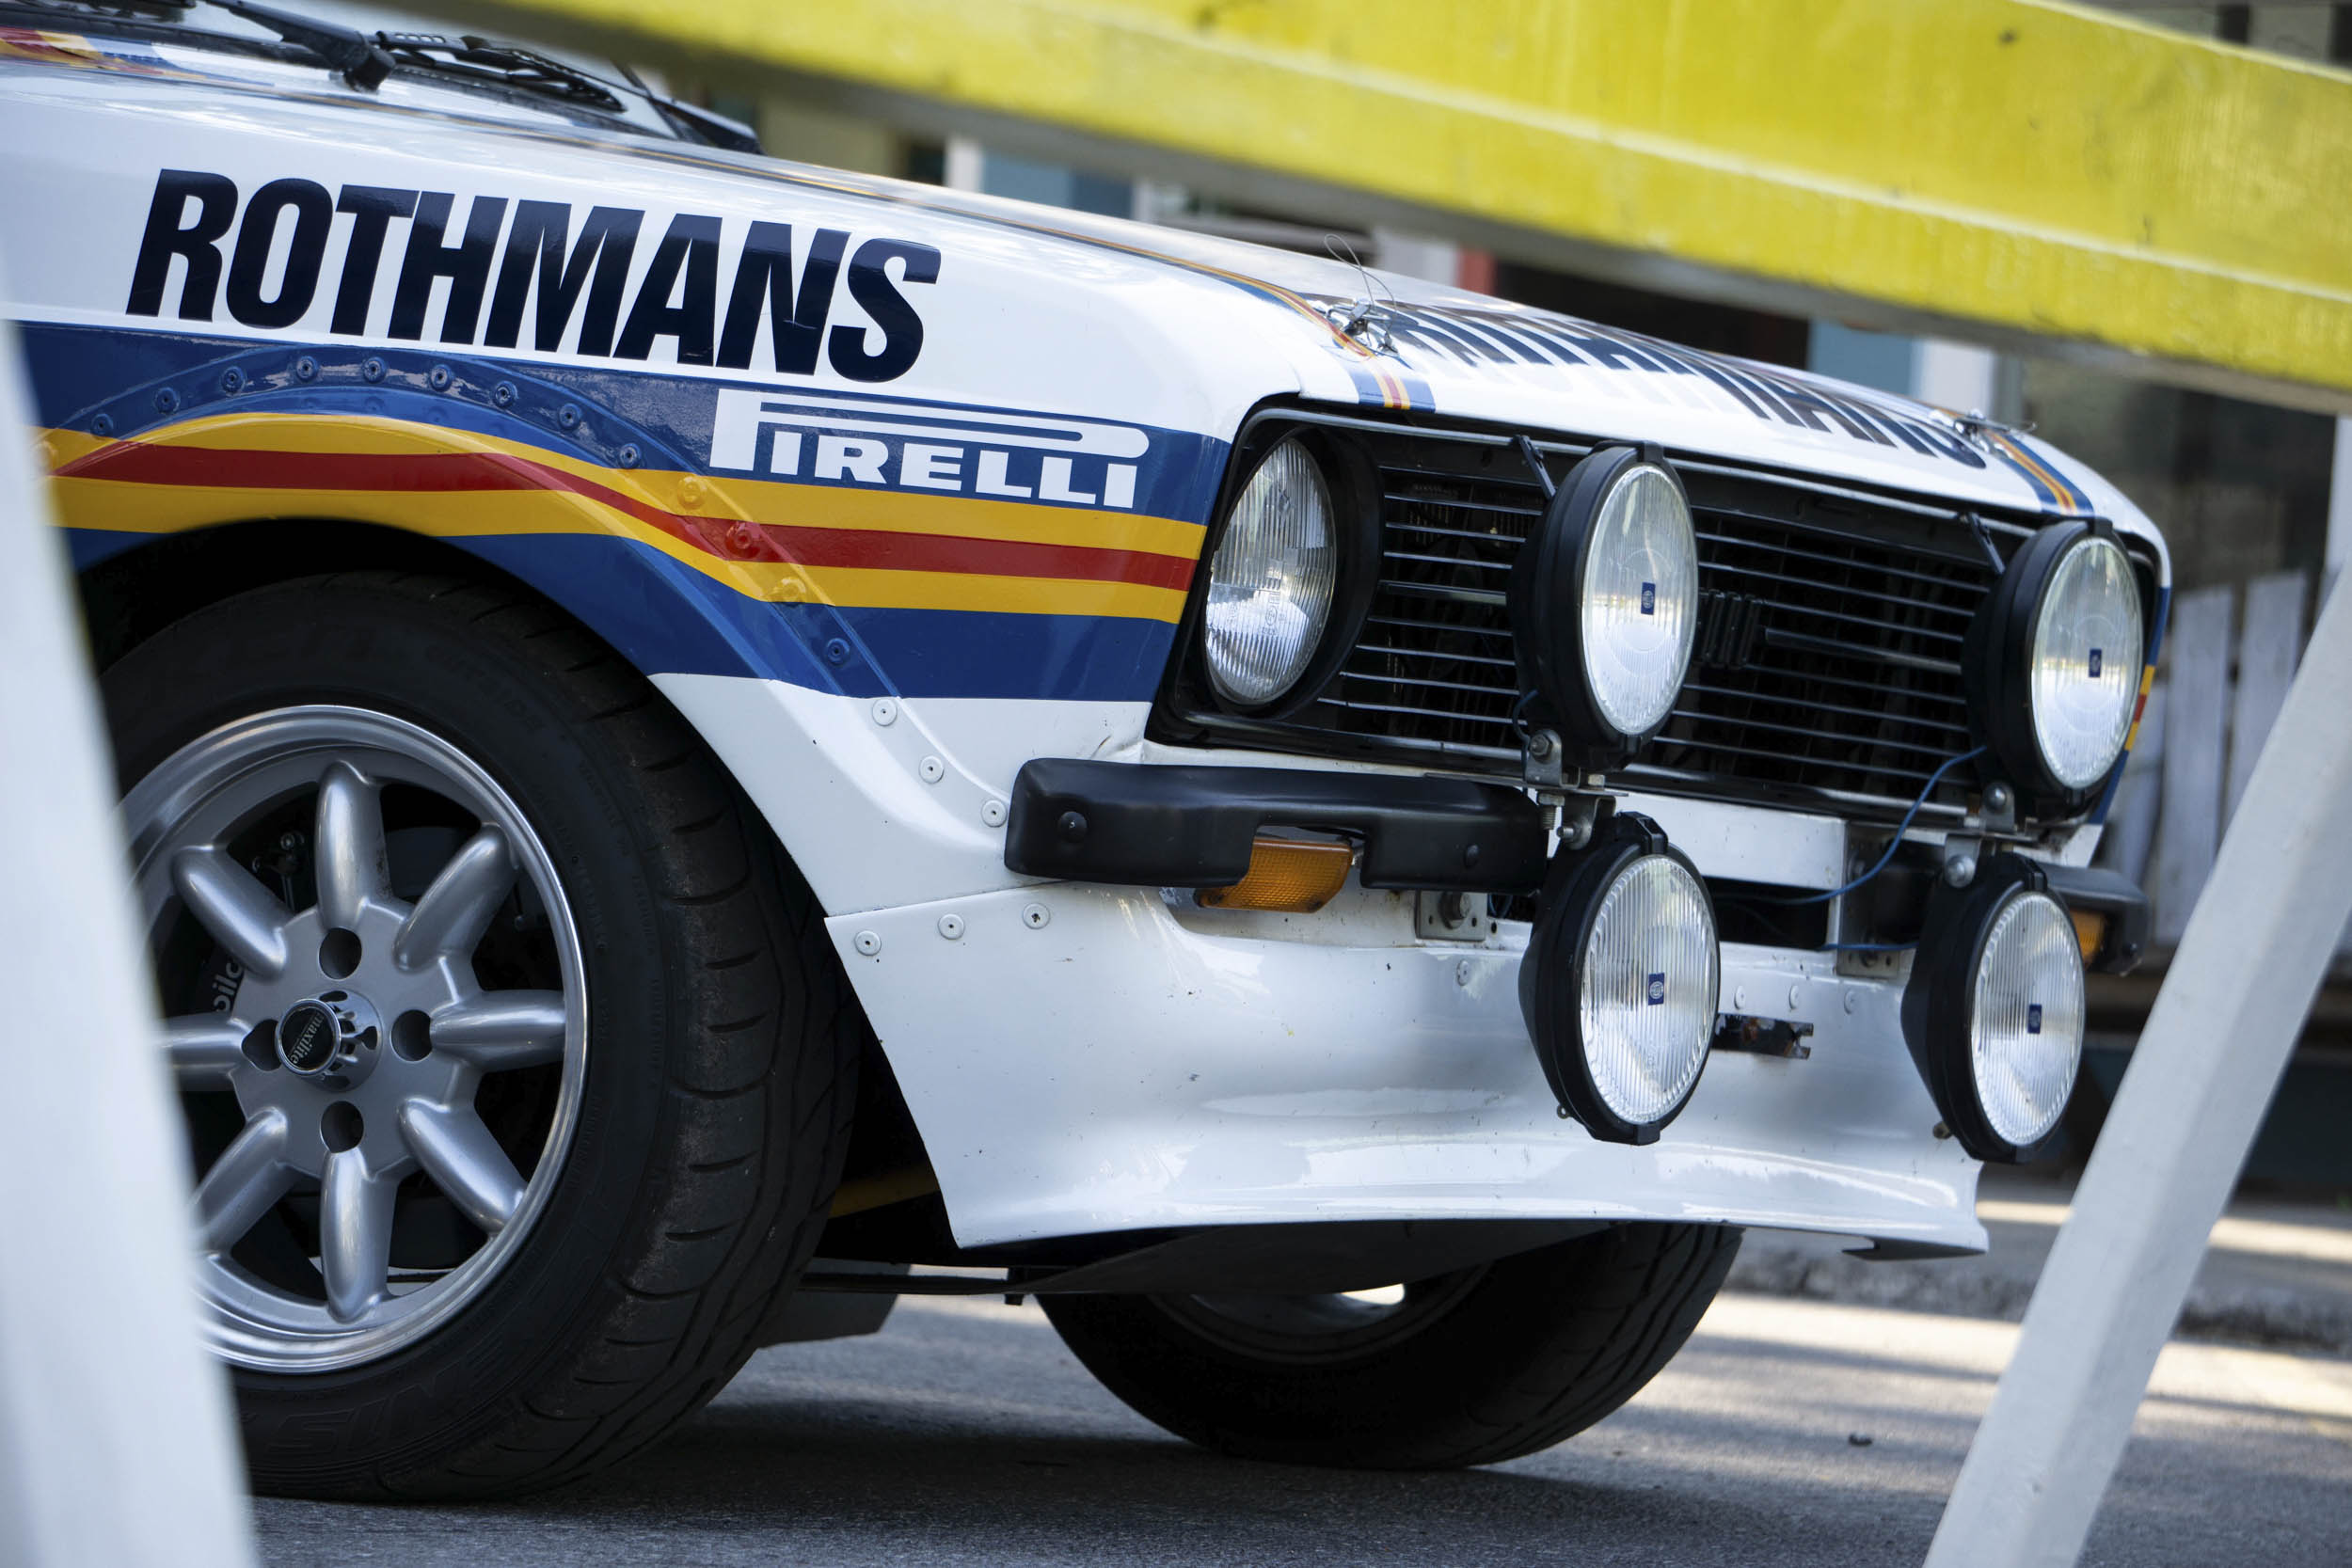 Rothmans livery